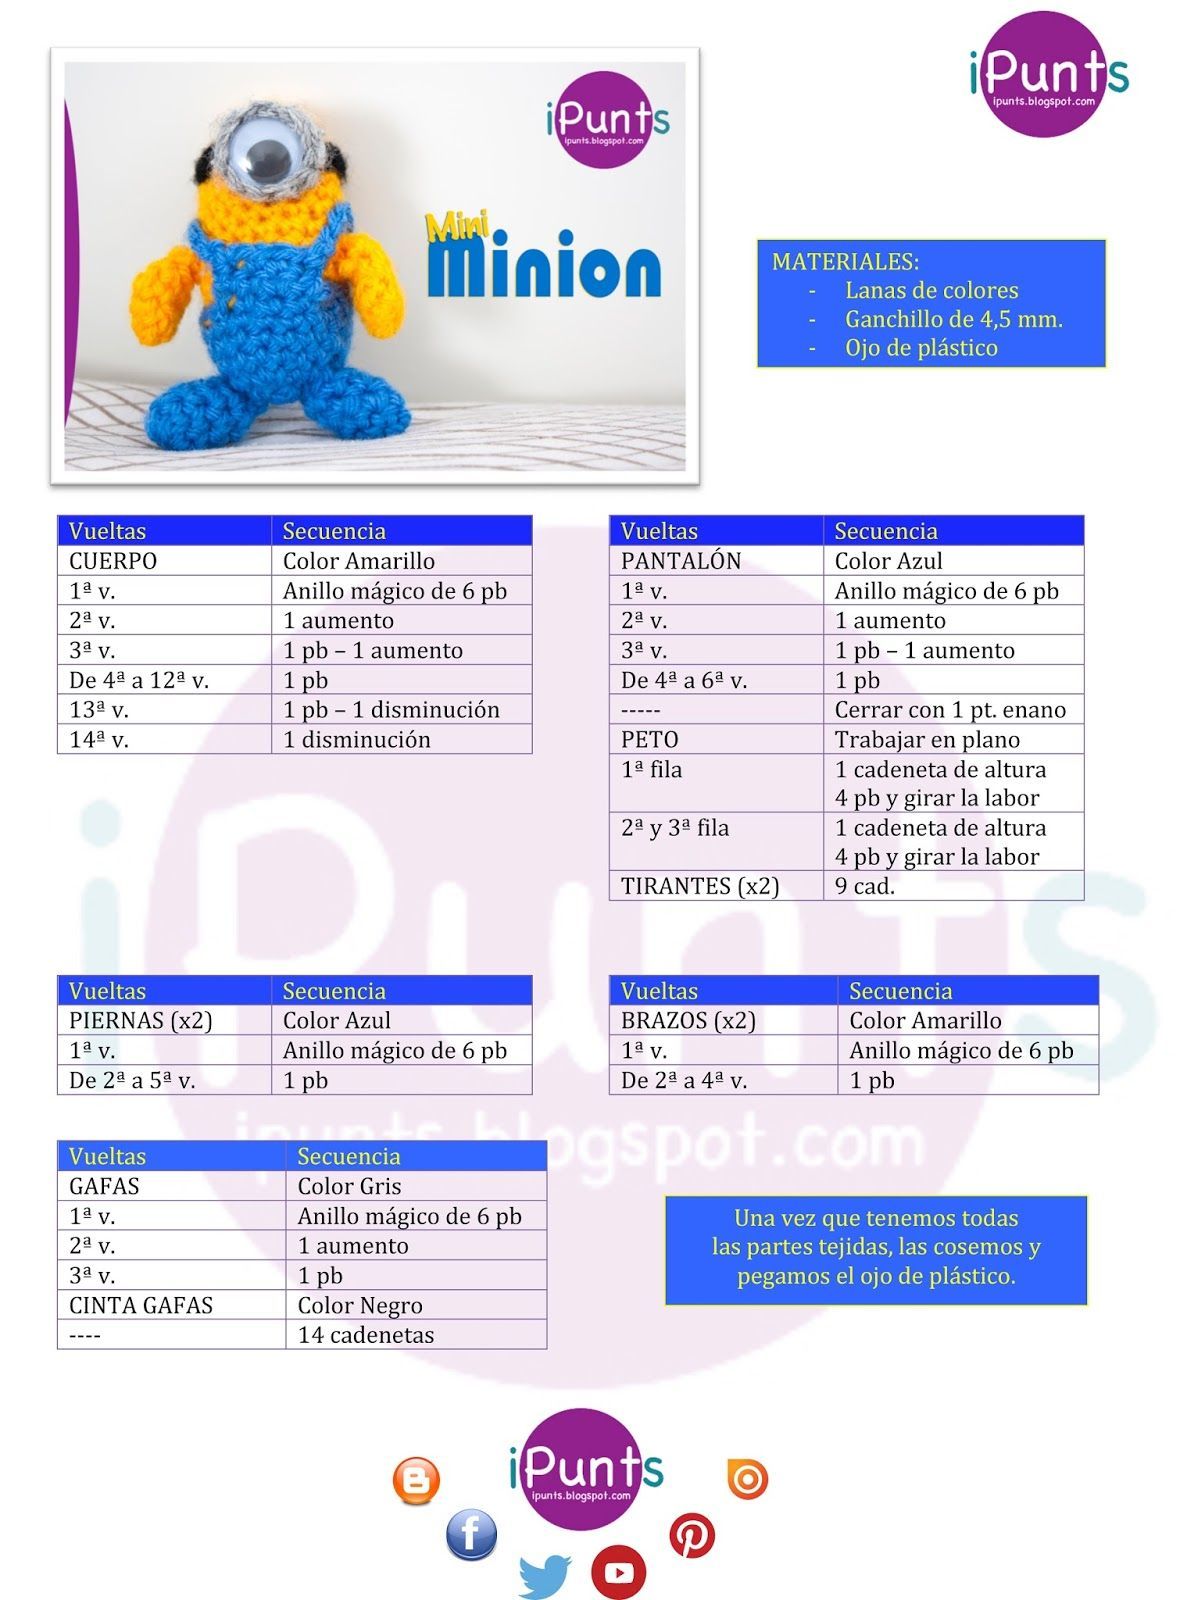 amigurumi patron minion ipunts ganchillo facil | Amigurumi ...